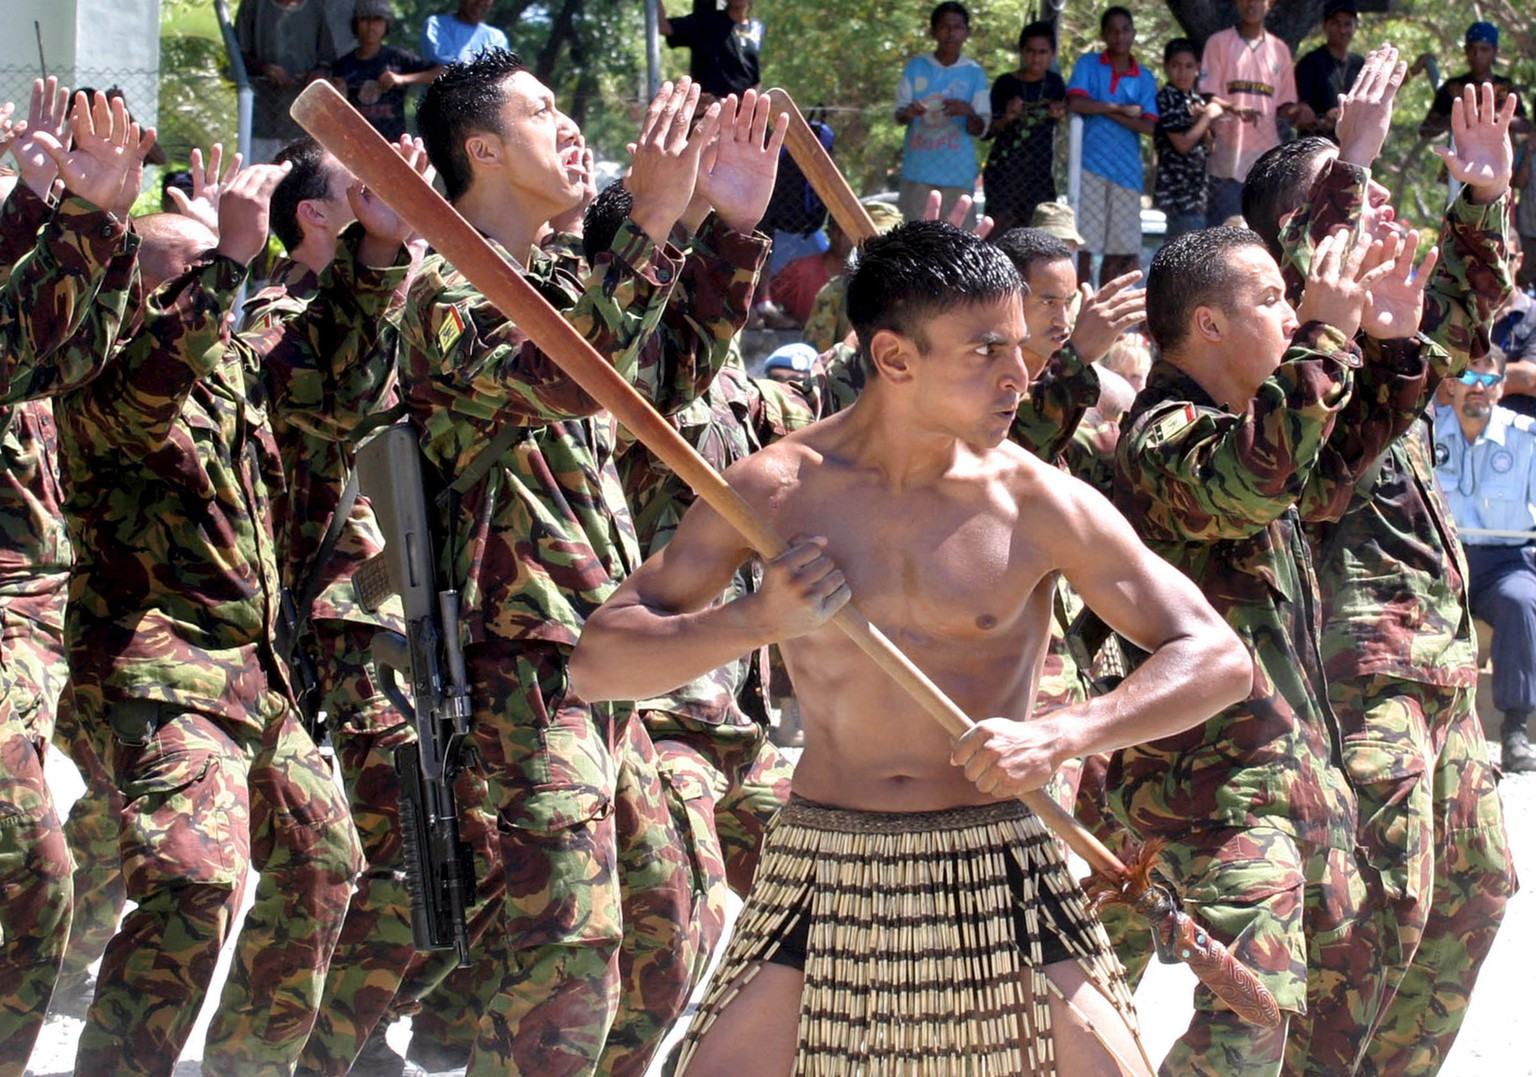 epa01020010 U.N. peacekeeping soldiers from New Zealand perform a traditional Maori Haka dance to welcome additional troops arriving in Dili, Timor Leste, 26 May 2007. New Zealand increased their peacekeeping troops from 130 to 150 personnels to guarantee security during the upcoming parliamentary elections.  EPA/ANTONIO DASIPARU